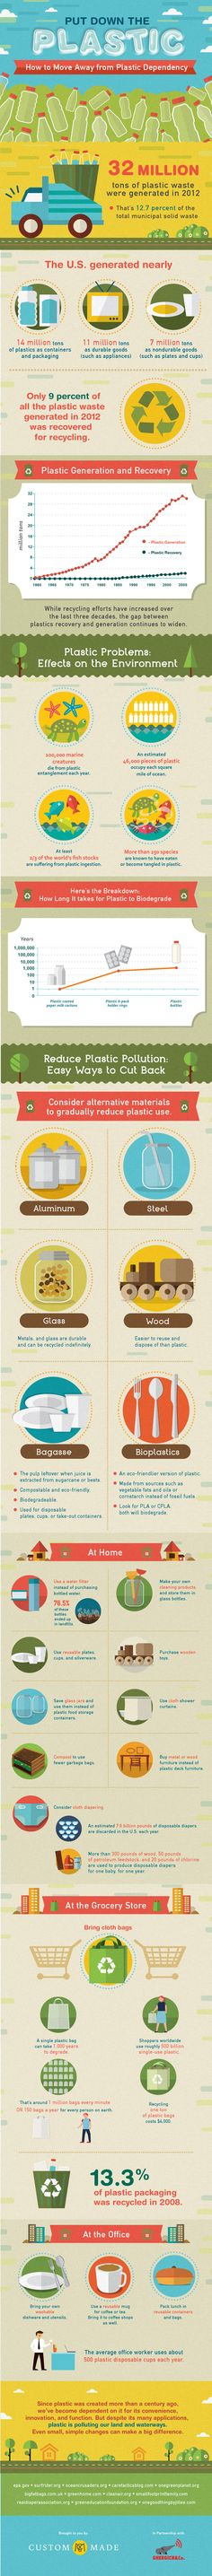 How to Move Away from Plastic Dependency Infographic - http://www.custommade.com/blog/put-down-the-plastic/